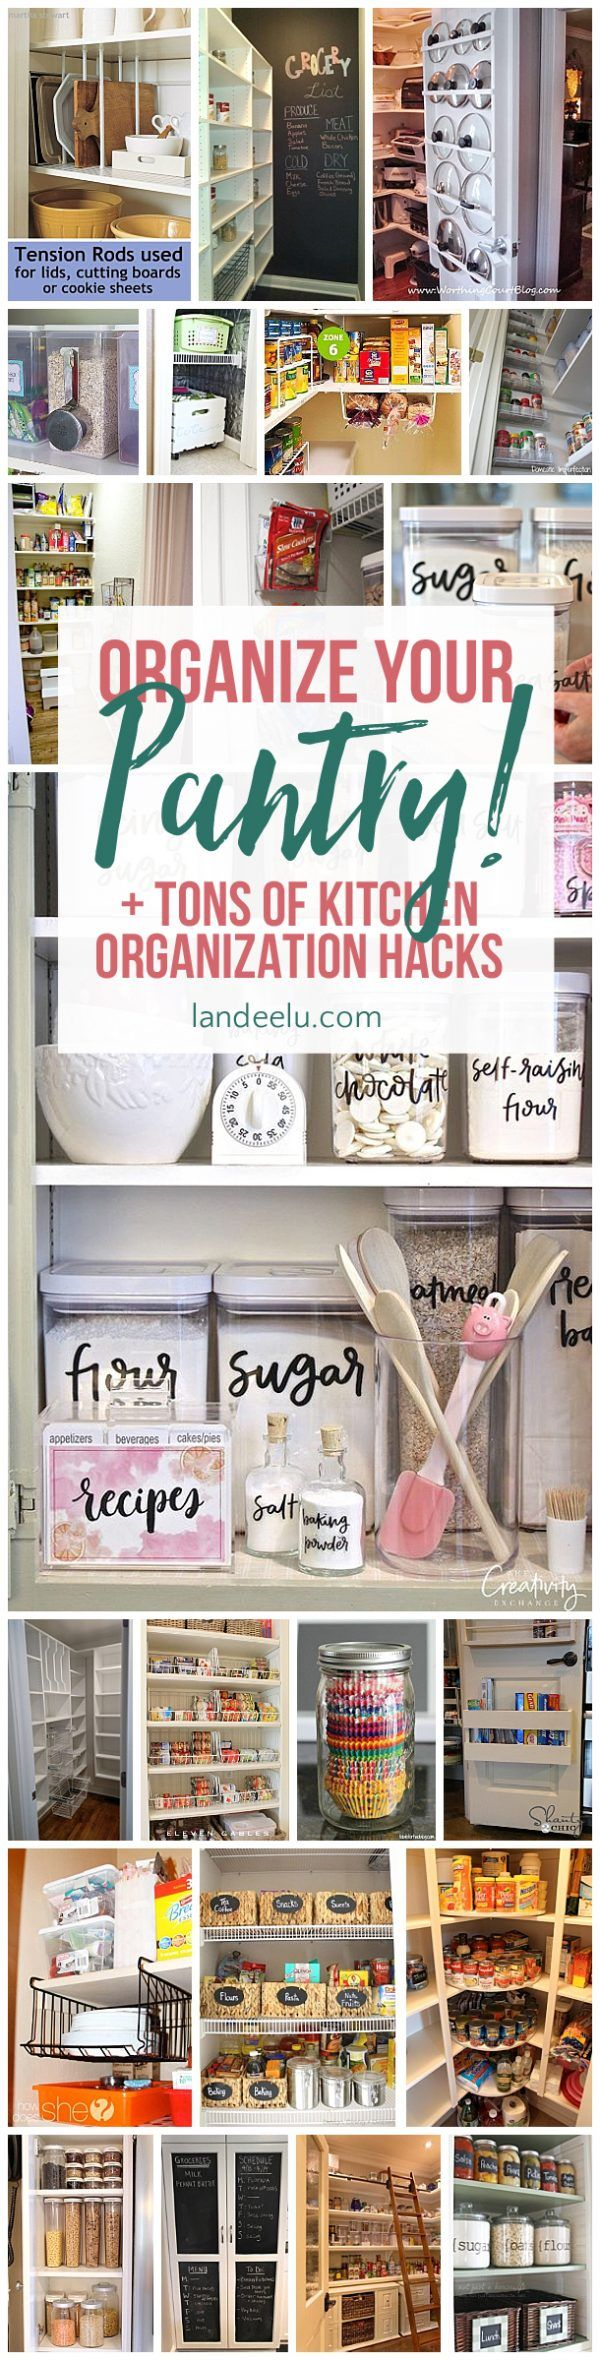 Love these ideas for kitchen organization... that pot lids one is genius! #kitch...